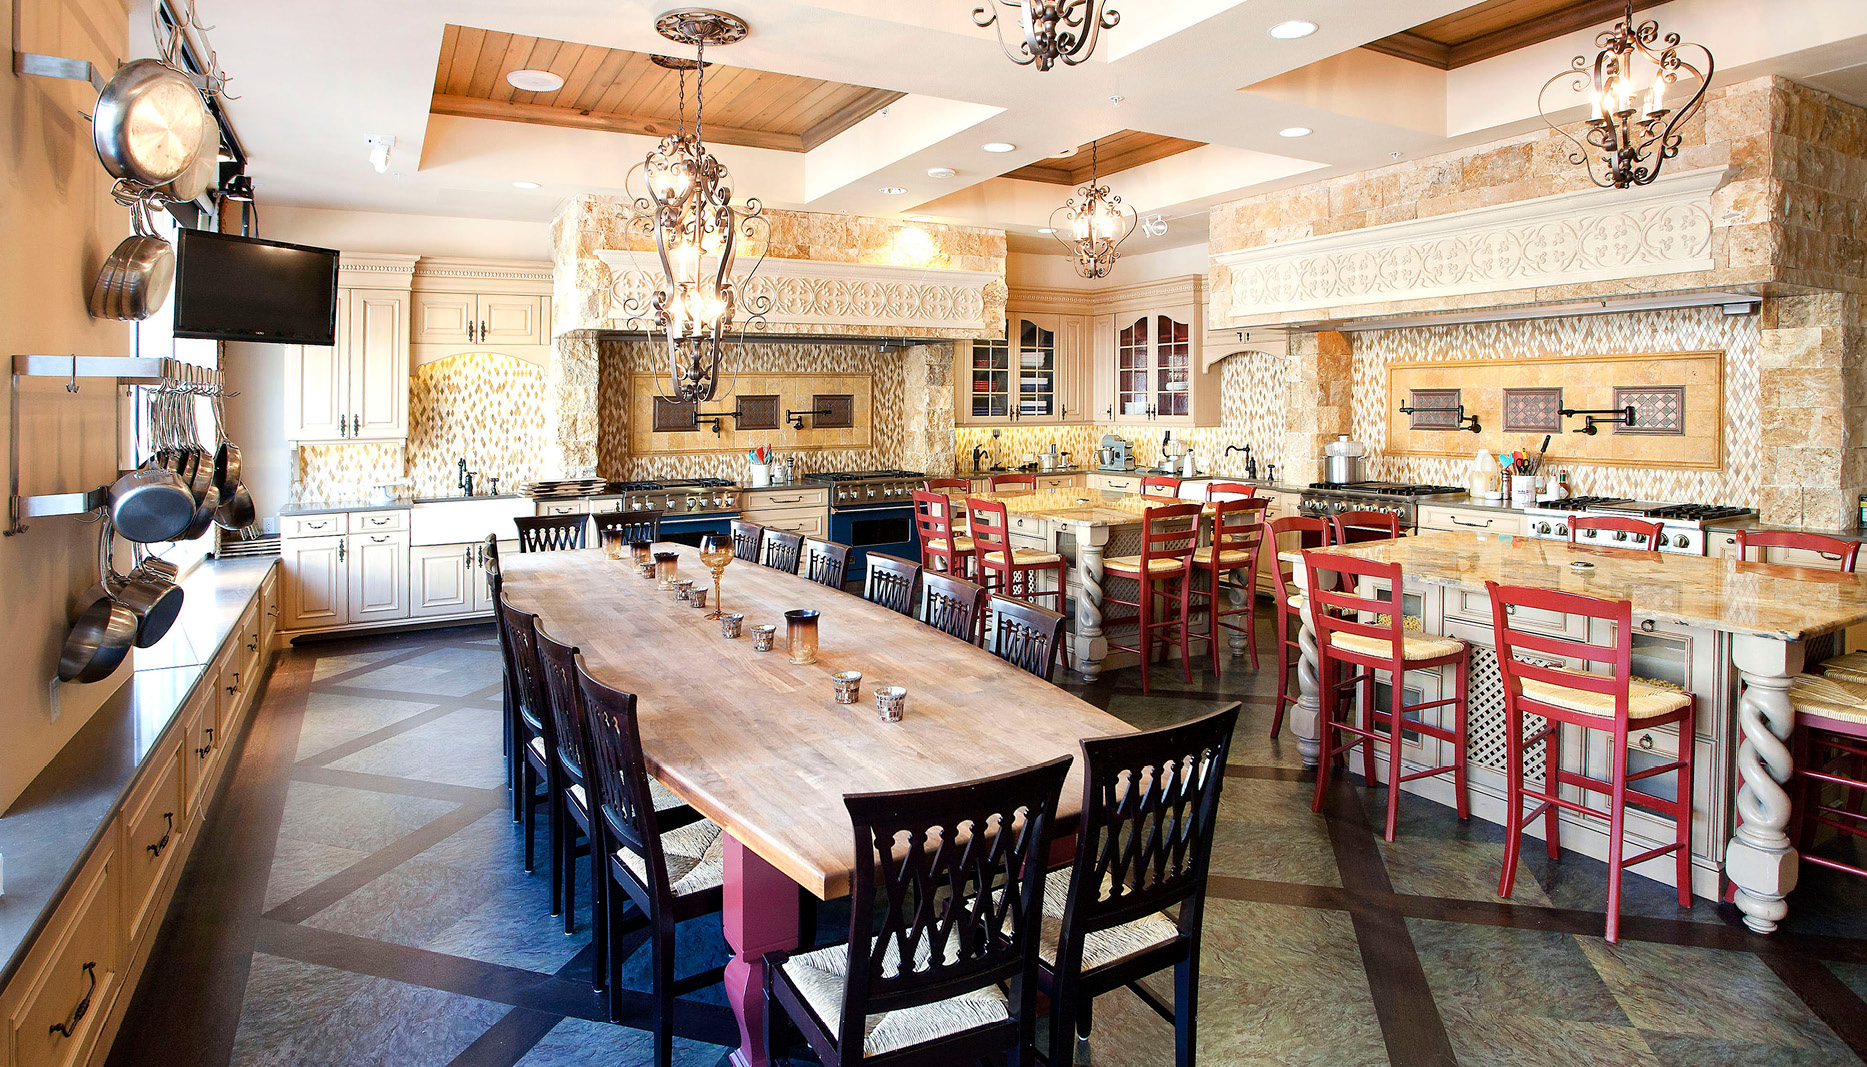 Viking culinary center wbrc architects engineers for Interior designers lakewood ranch fl